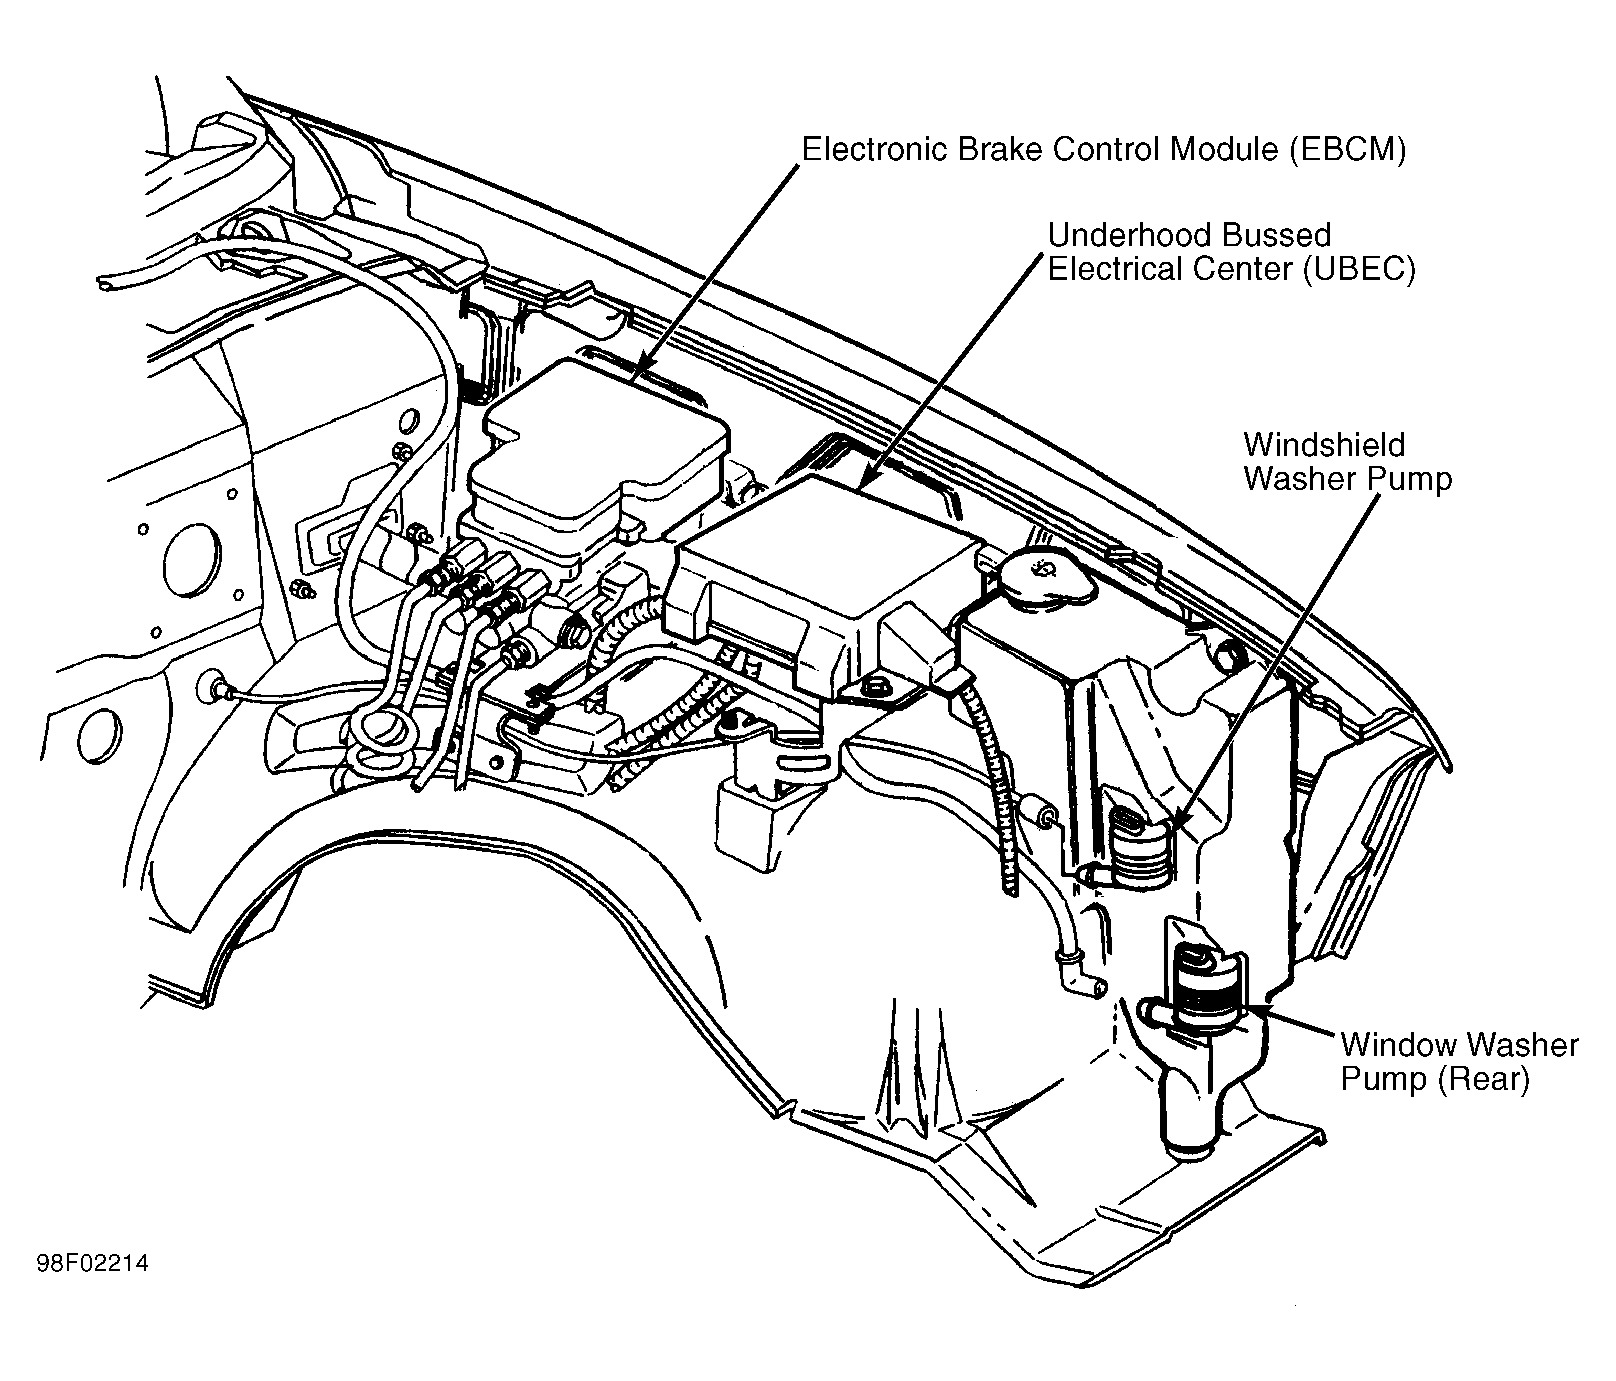 Honda Accord88 Radiator Diagram And Schematics as well 48lqi Location Starter 1999 Chvy Tahoe 5 7 likewise Were Is The Vacuum Line For Pressure Regulator On A 99 Tahoe 5 7 Vortec 120190 additionally Chevrolet Camaro 2 5 1988 Specs And Images additionally 99 Honda Accord Engine Diagram Fuel Lines. on 1999 blazer vacuum line diagram